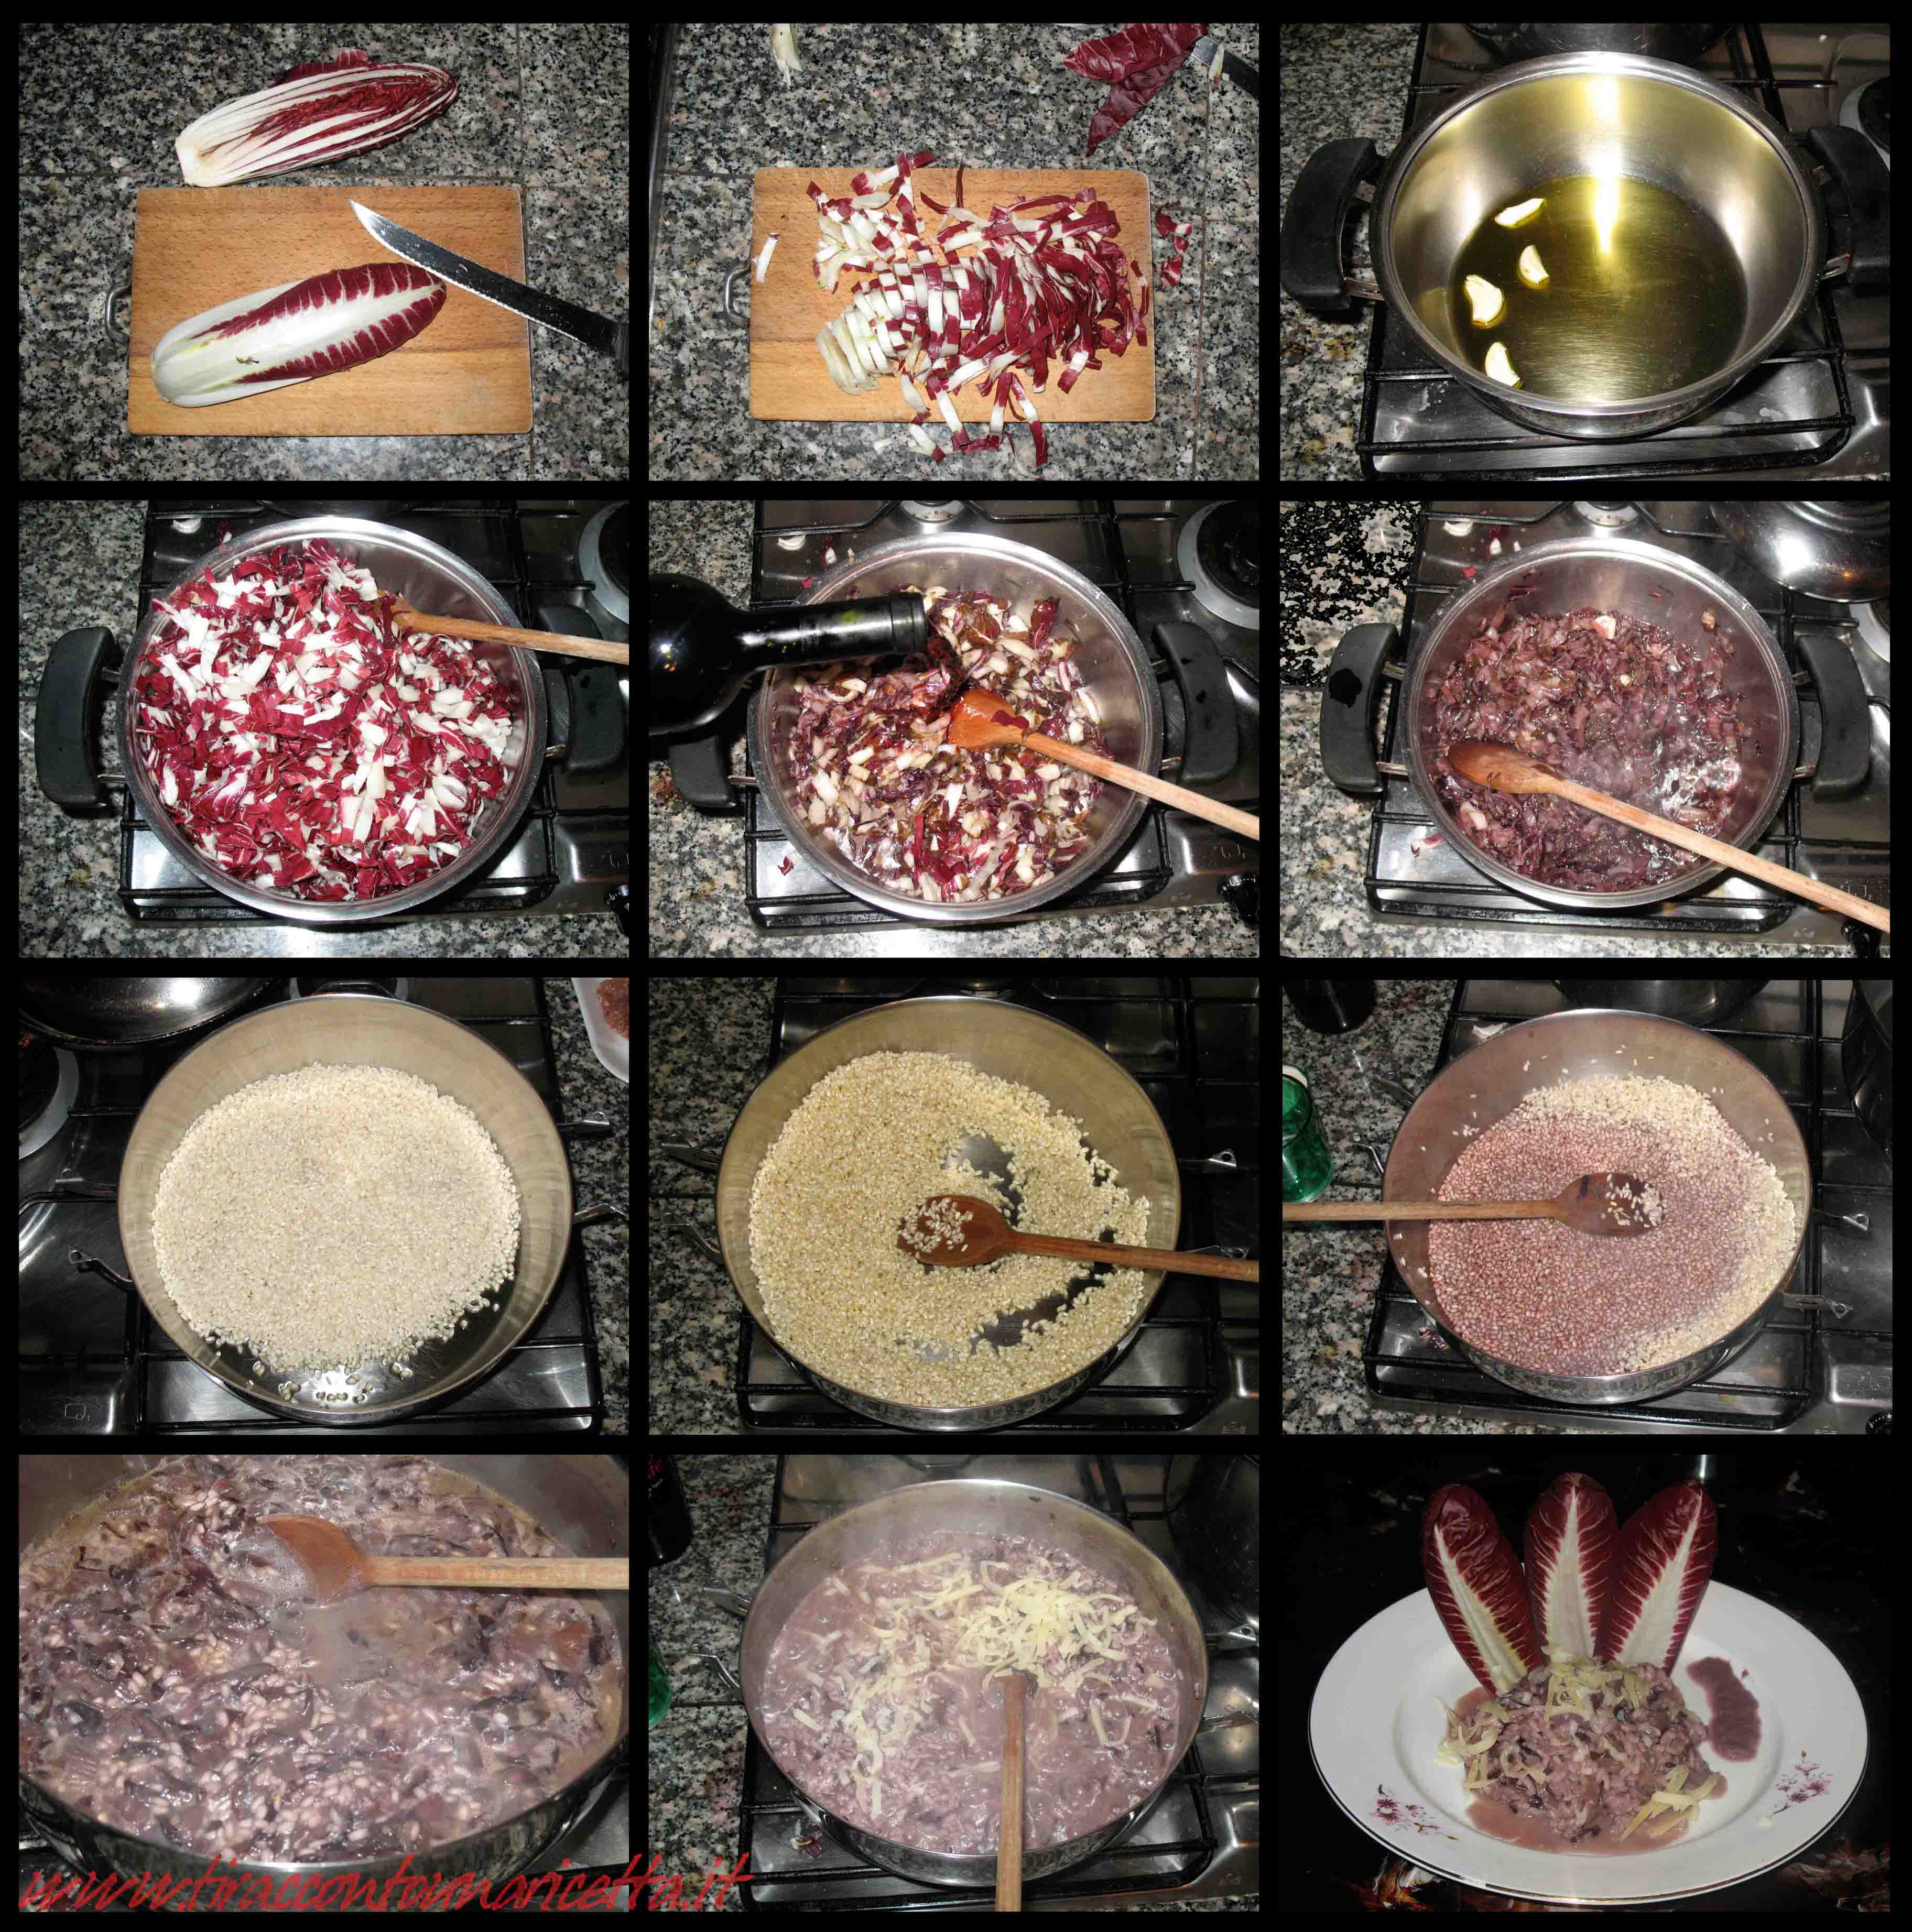 Risotto with radicchio and caciotta of sheep